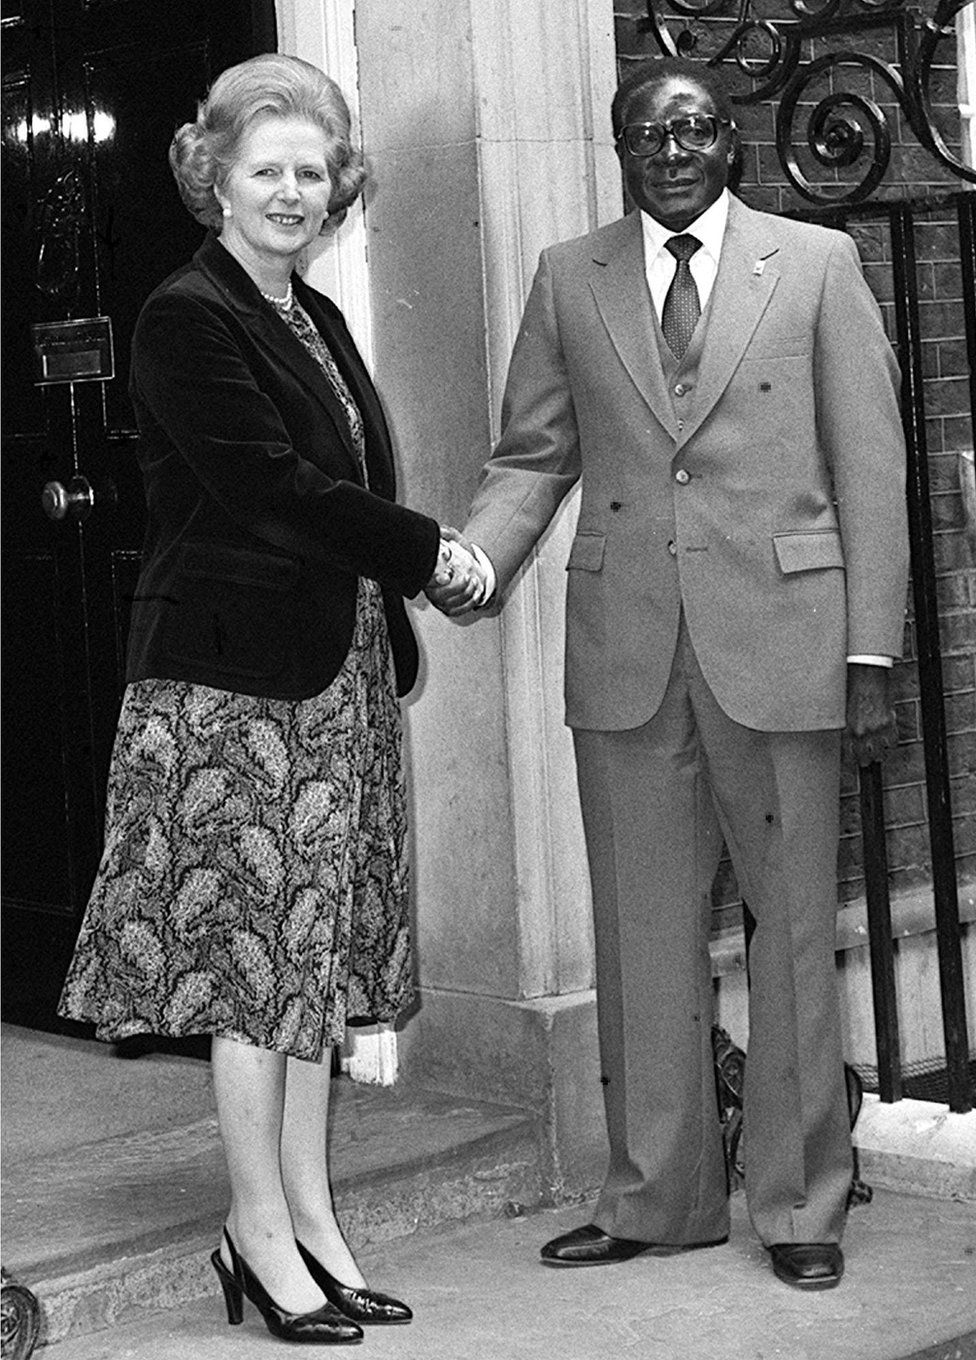 Mugabe, seen here with UK Prime Minister Margaret Thatcher in 1980, initially pursued a policy of reconciliation with his white former enemies, letting them keep their economic wealth.